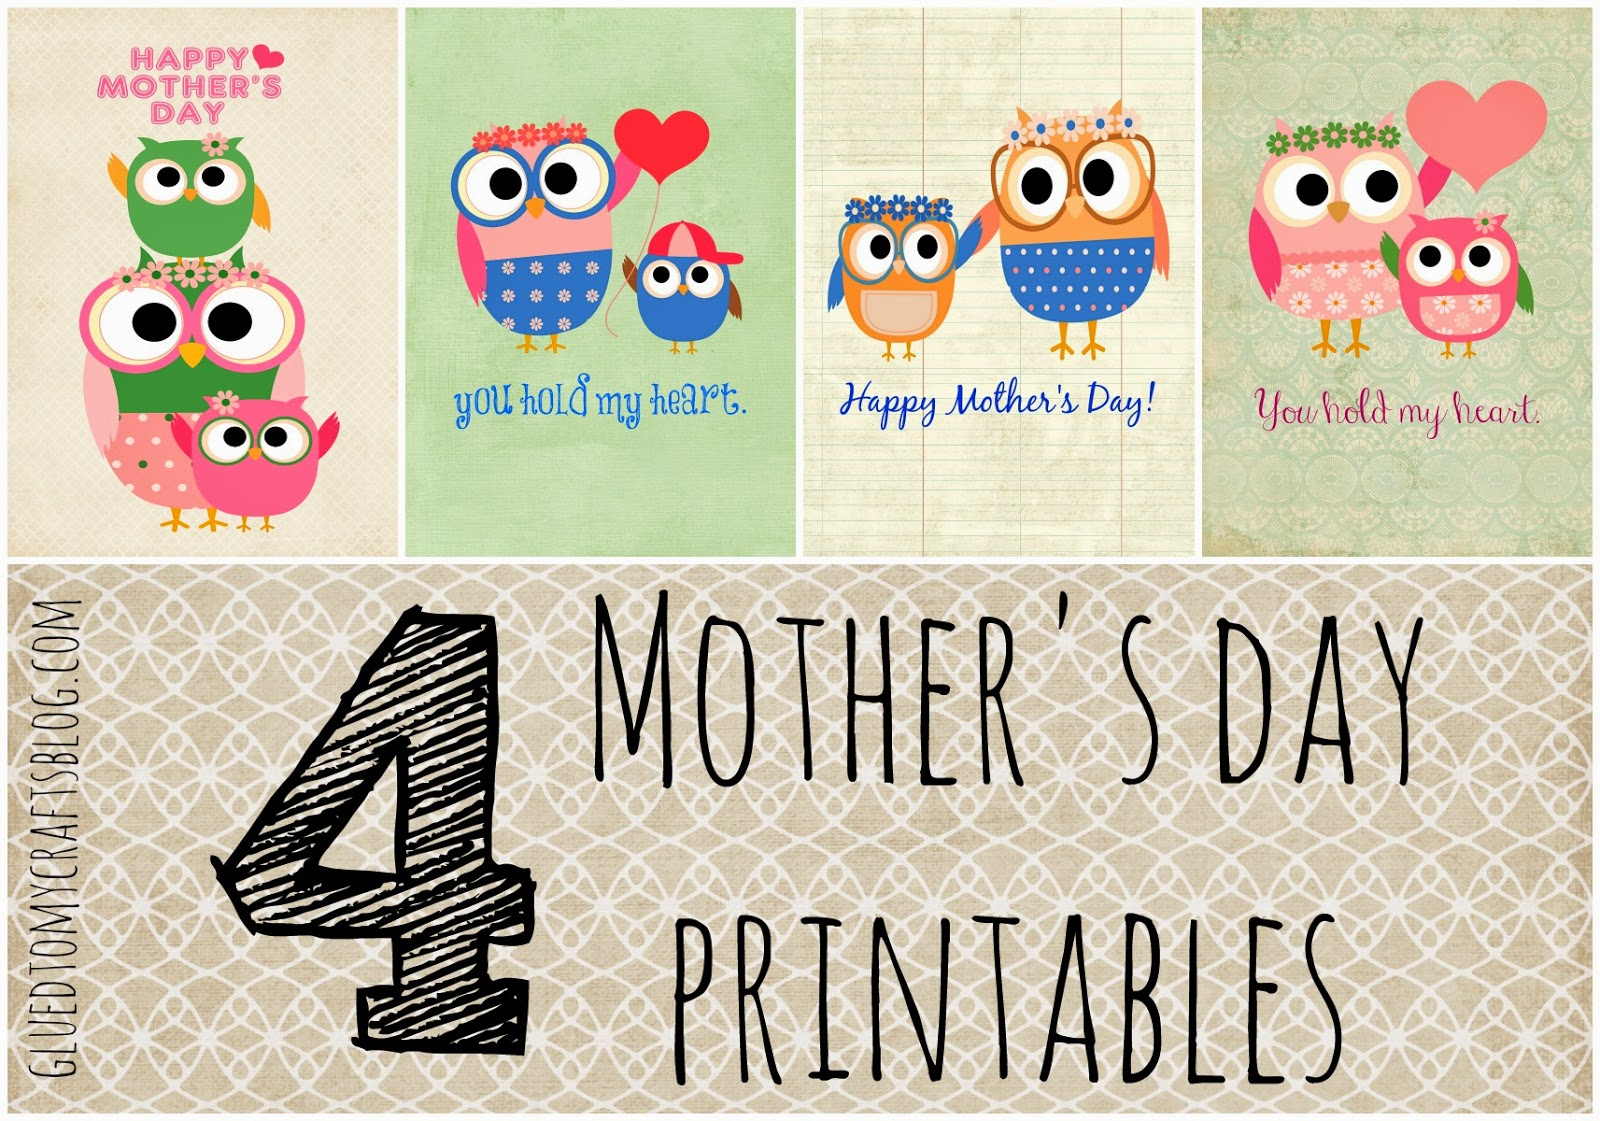 Free Printable Mother's Day Cards (Pdf) | Cisdem - Free Printable Mothers Day Cards To My Wife